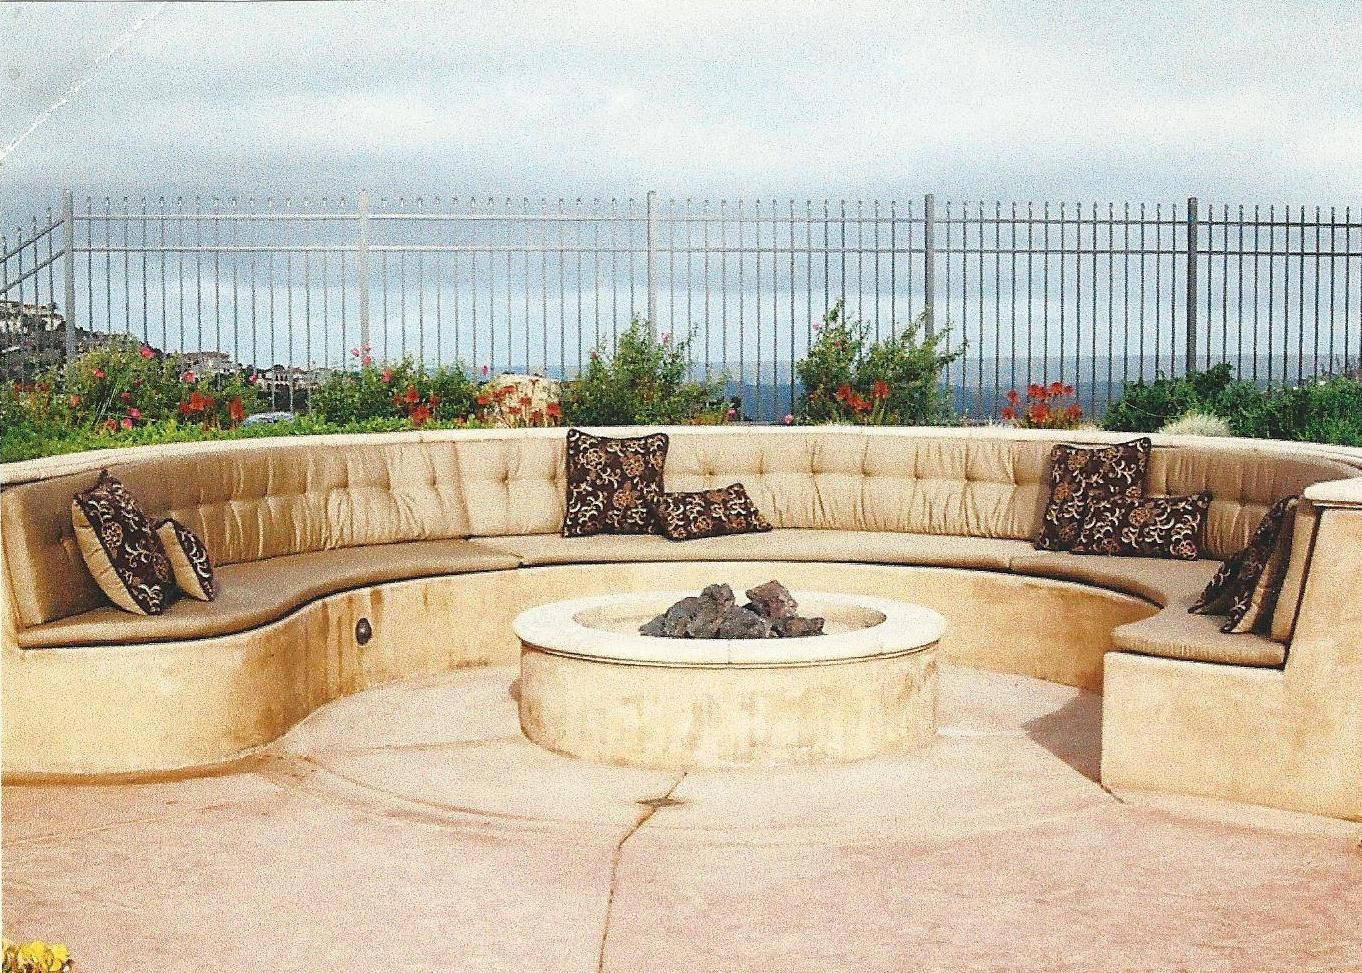 Curved Concrete Custom Bench Cushions Made In Sunbrella Patio inside size 1362 X 973